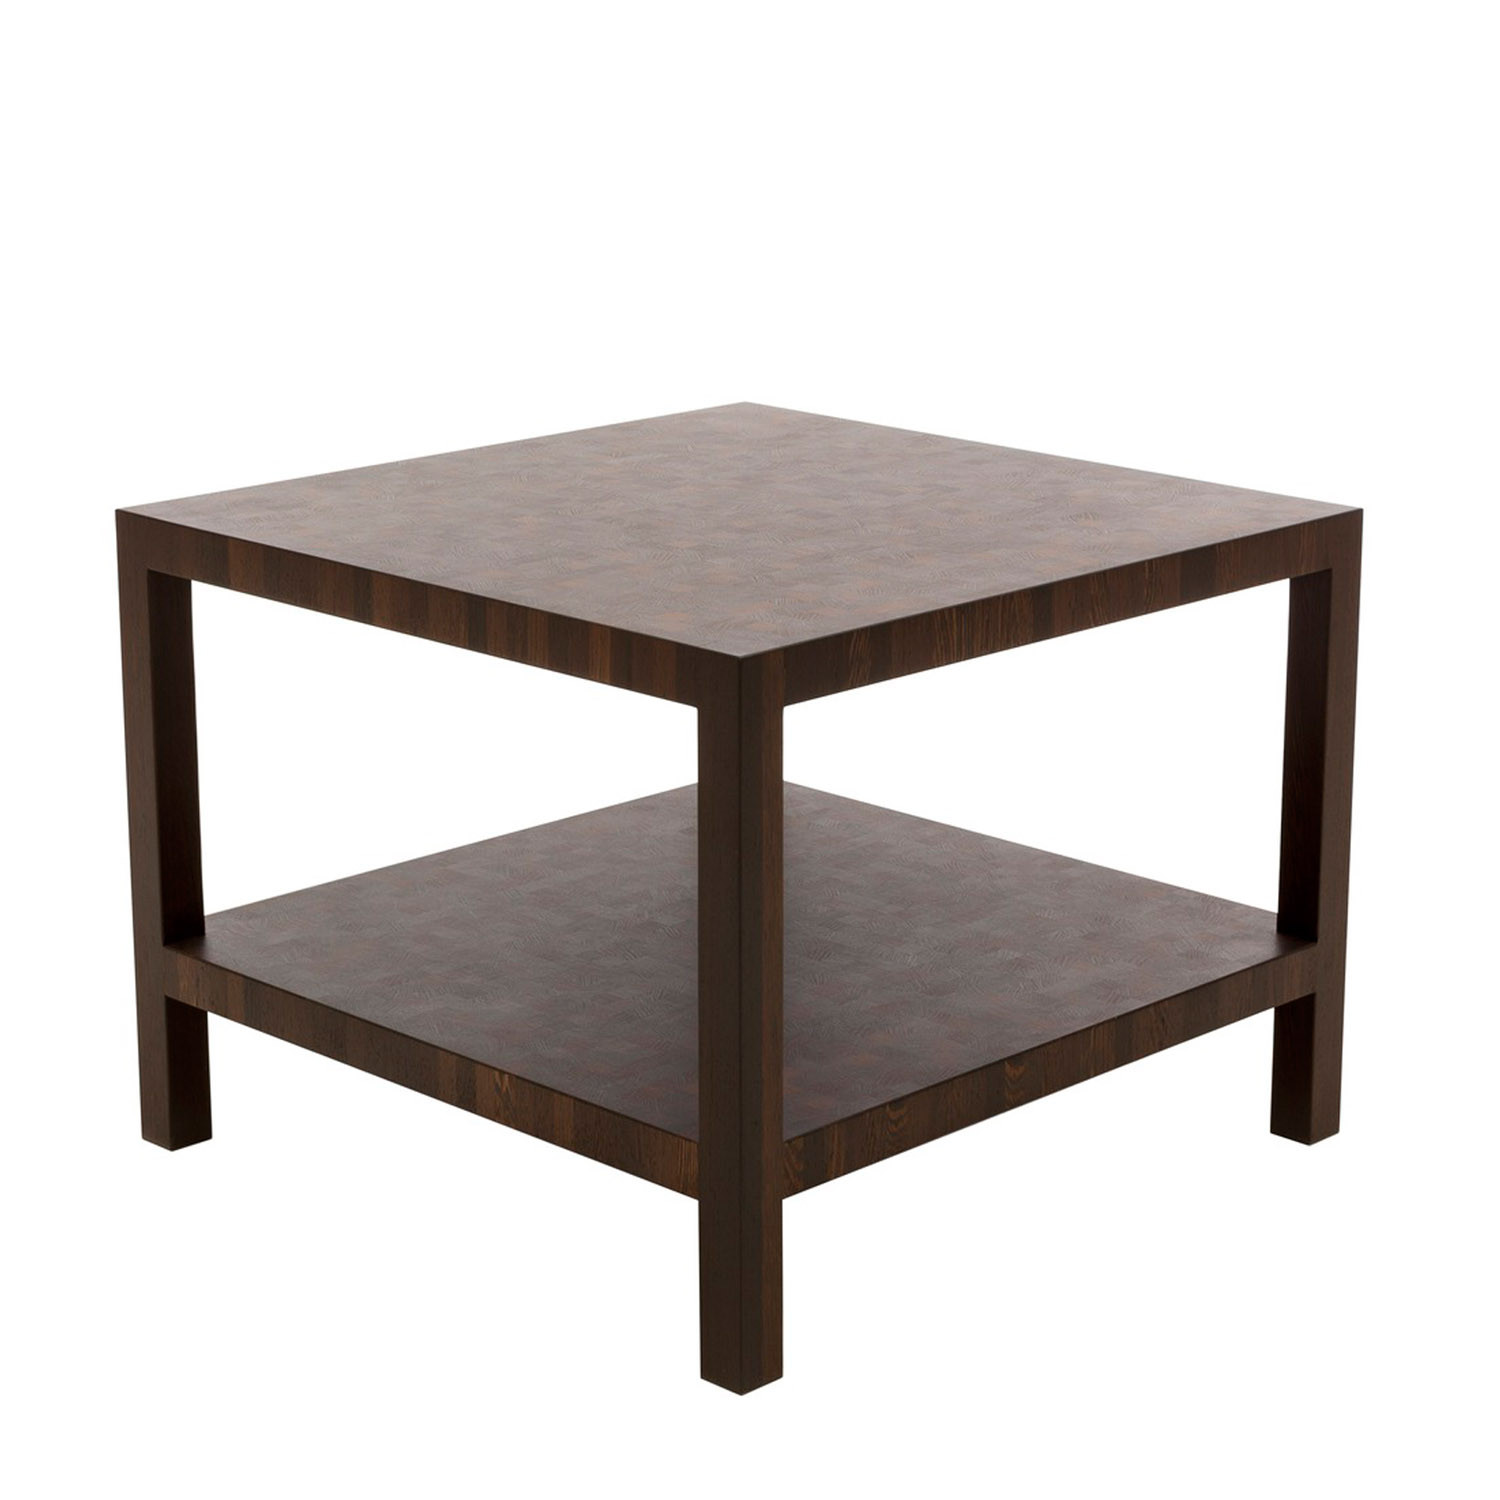 Table le Carre by Bulo